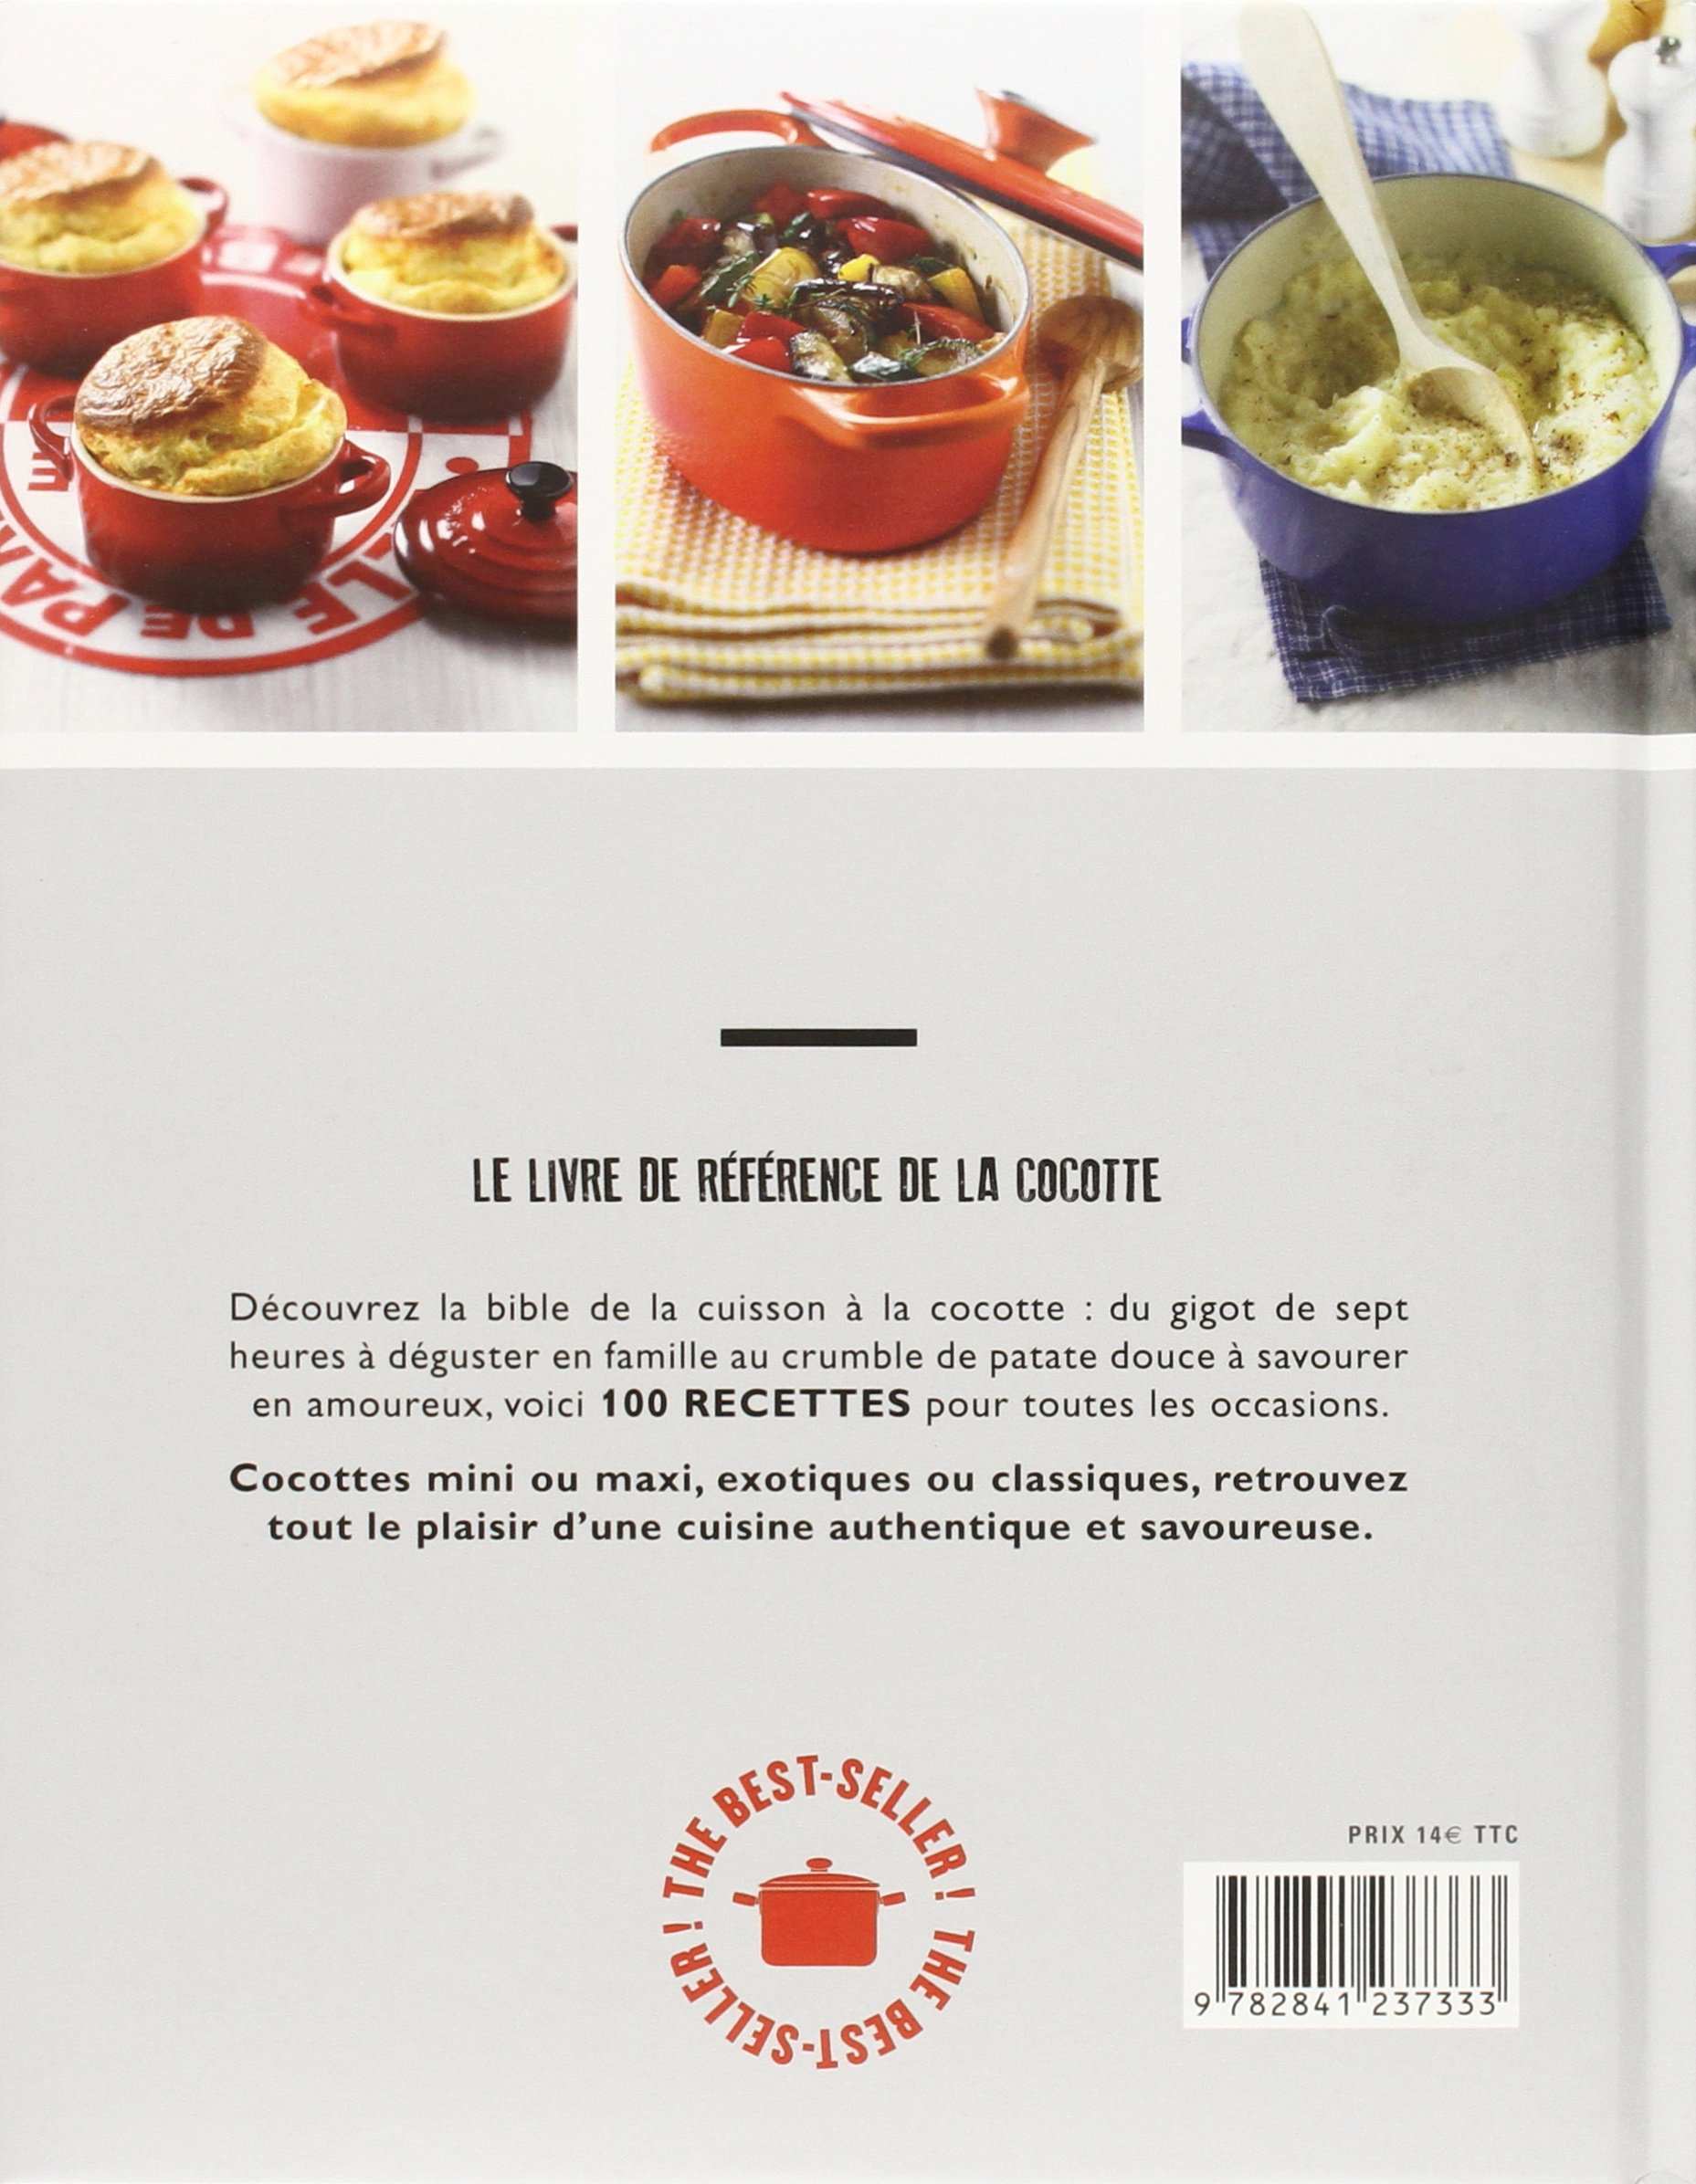 Cocotte cook book - 100 mini & maxi cocottes: 9782841237333: Amazon.com:  Books